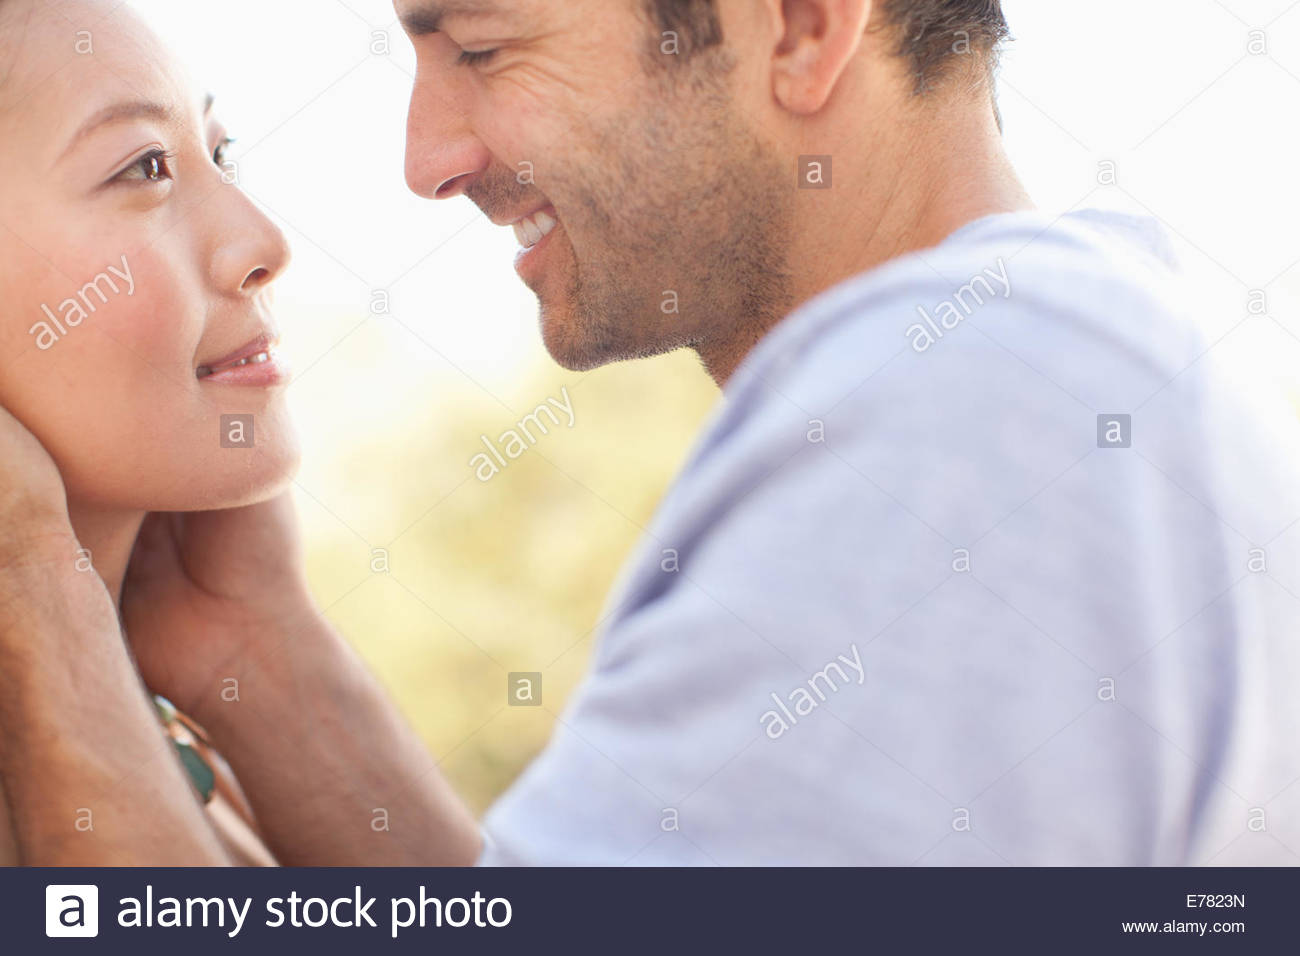 Close up of smiling coupleÂ's faces - Stock Image